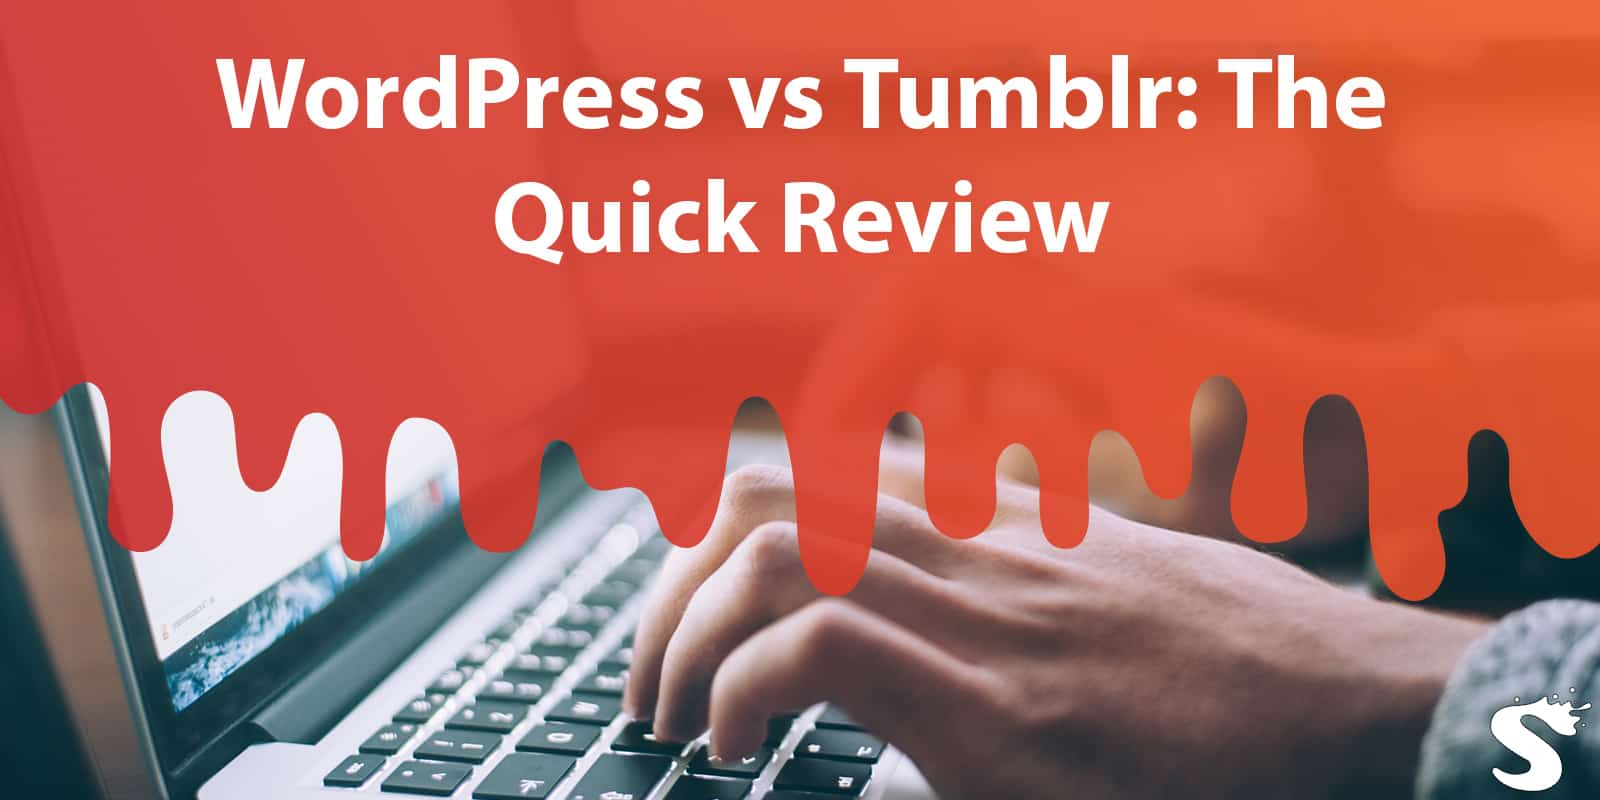 WordPress vs Tumblr: The Quick Review